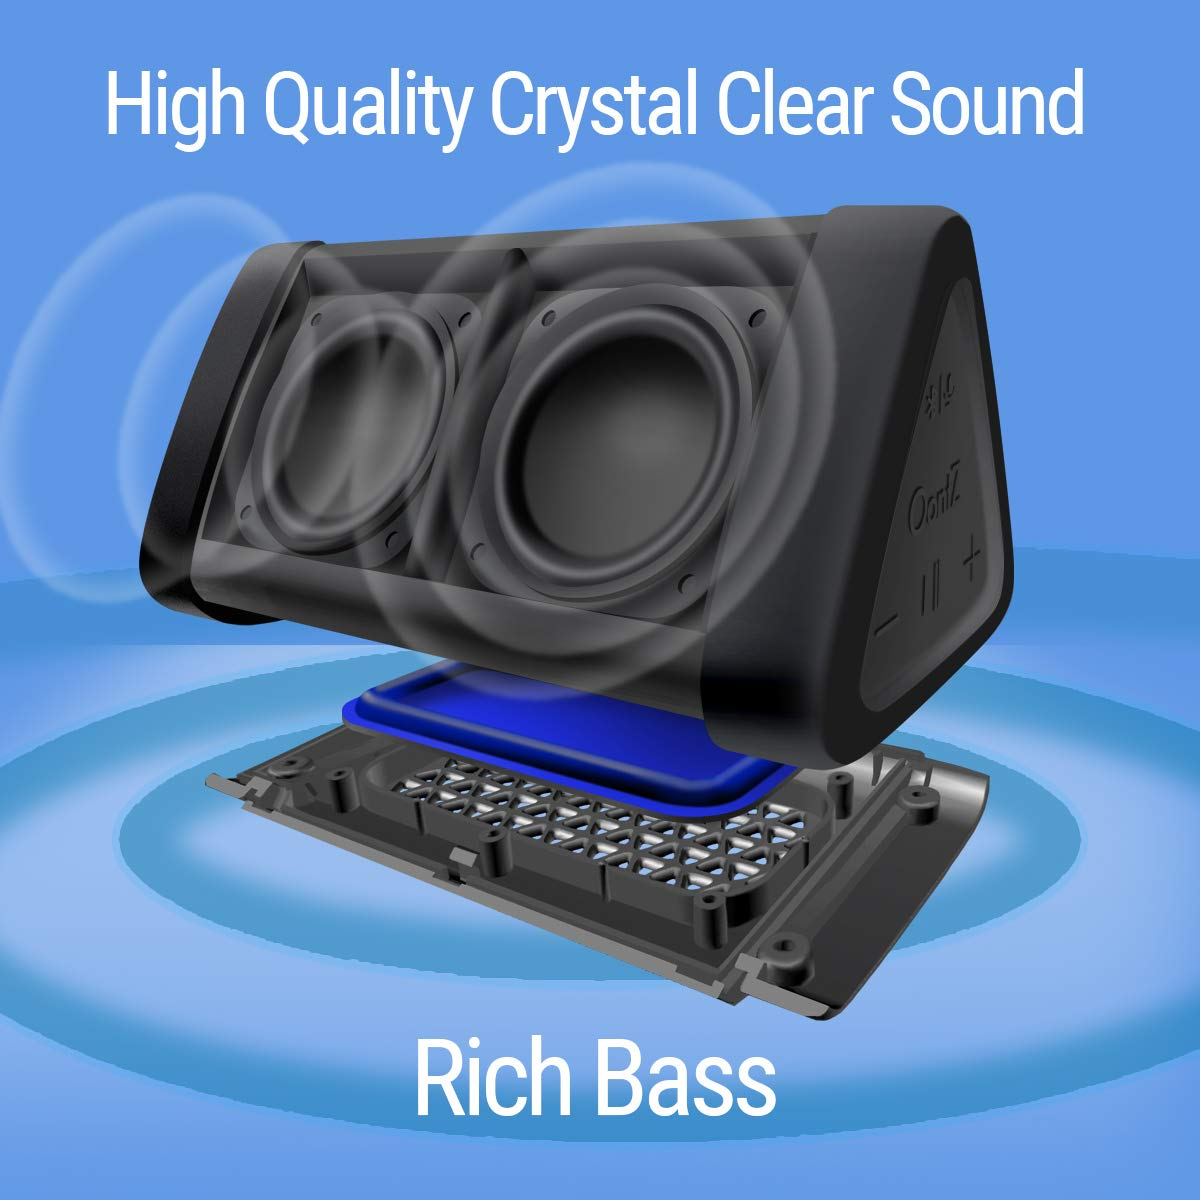 OontZ Angle 3 (3rd Gen) Portable Bluetooth Speaker, Louder Crystal Clear Stereo Sound, Rich Bass, 100 Ft Wireless Speaker Range, IPX5, Bluetooth Speakers by Cambridge SoundWorks (Orange) by Cambridge Soundworks (Image #5)